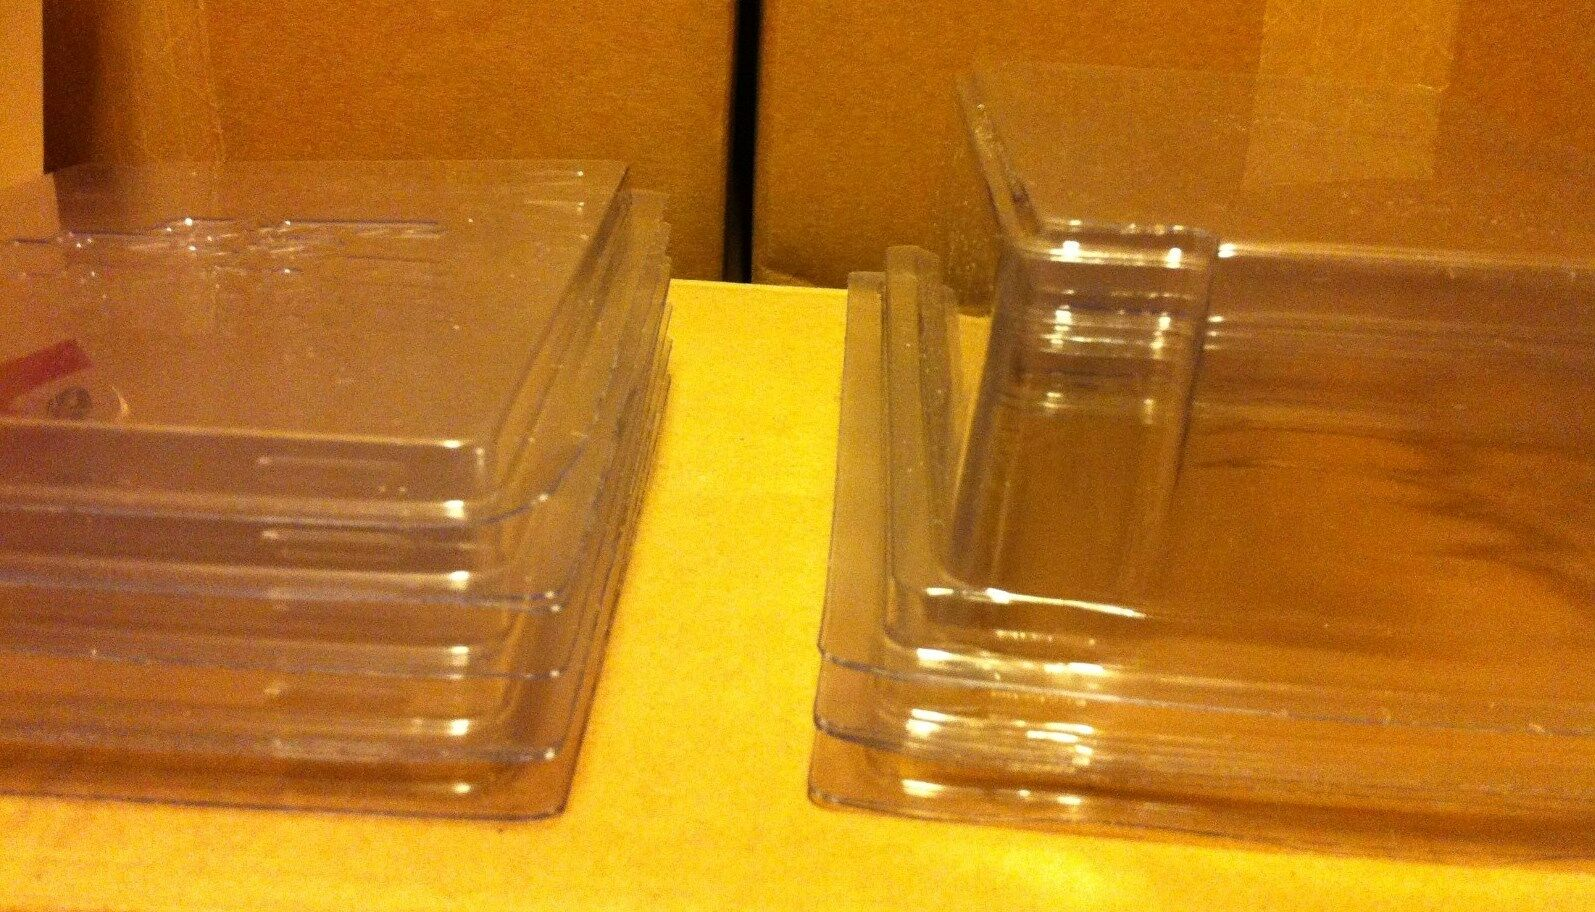 Lot of 25 Protech STAR CASE Display Cases - Vintage Star Wars GI Joe Marvel New